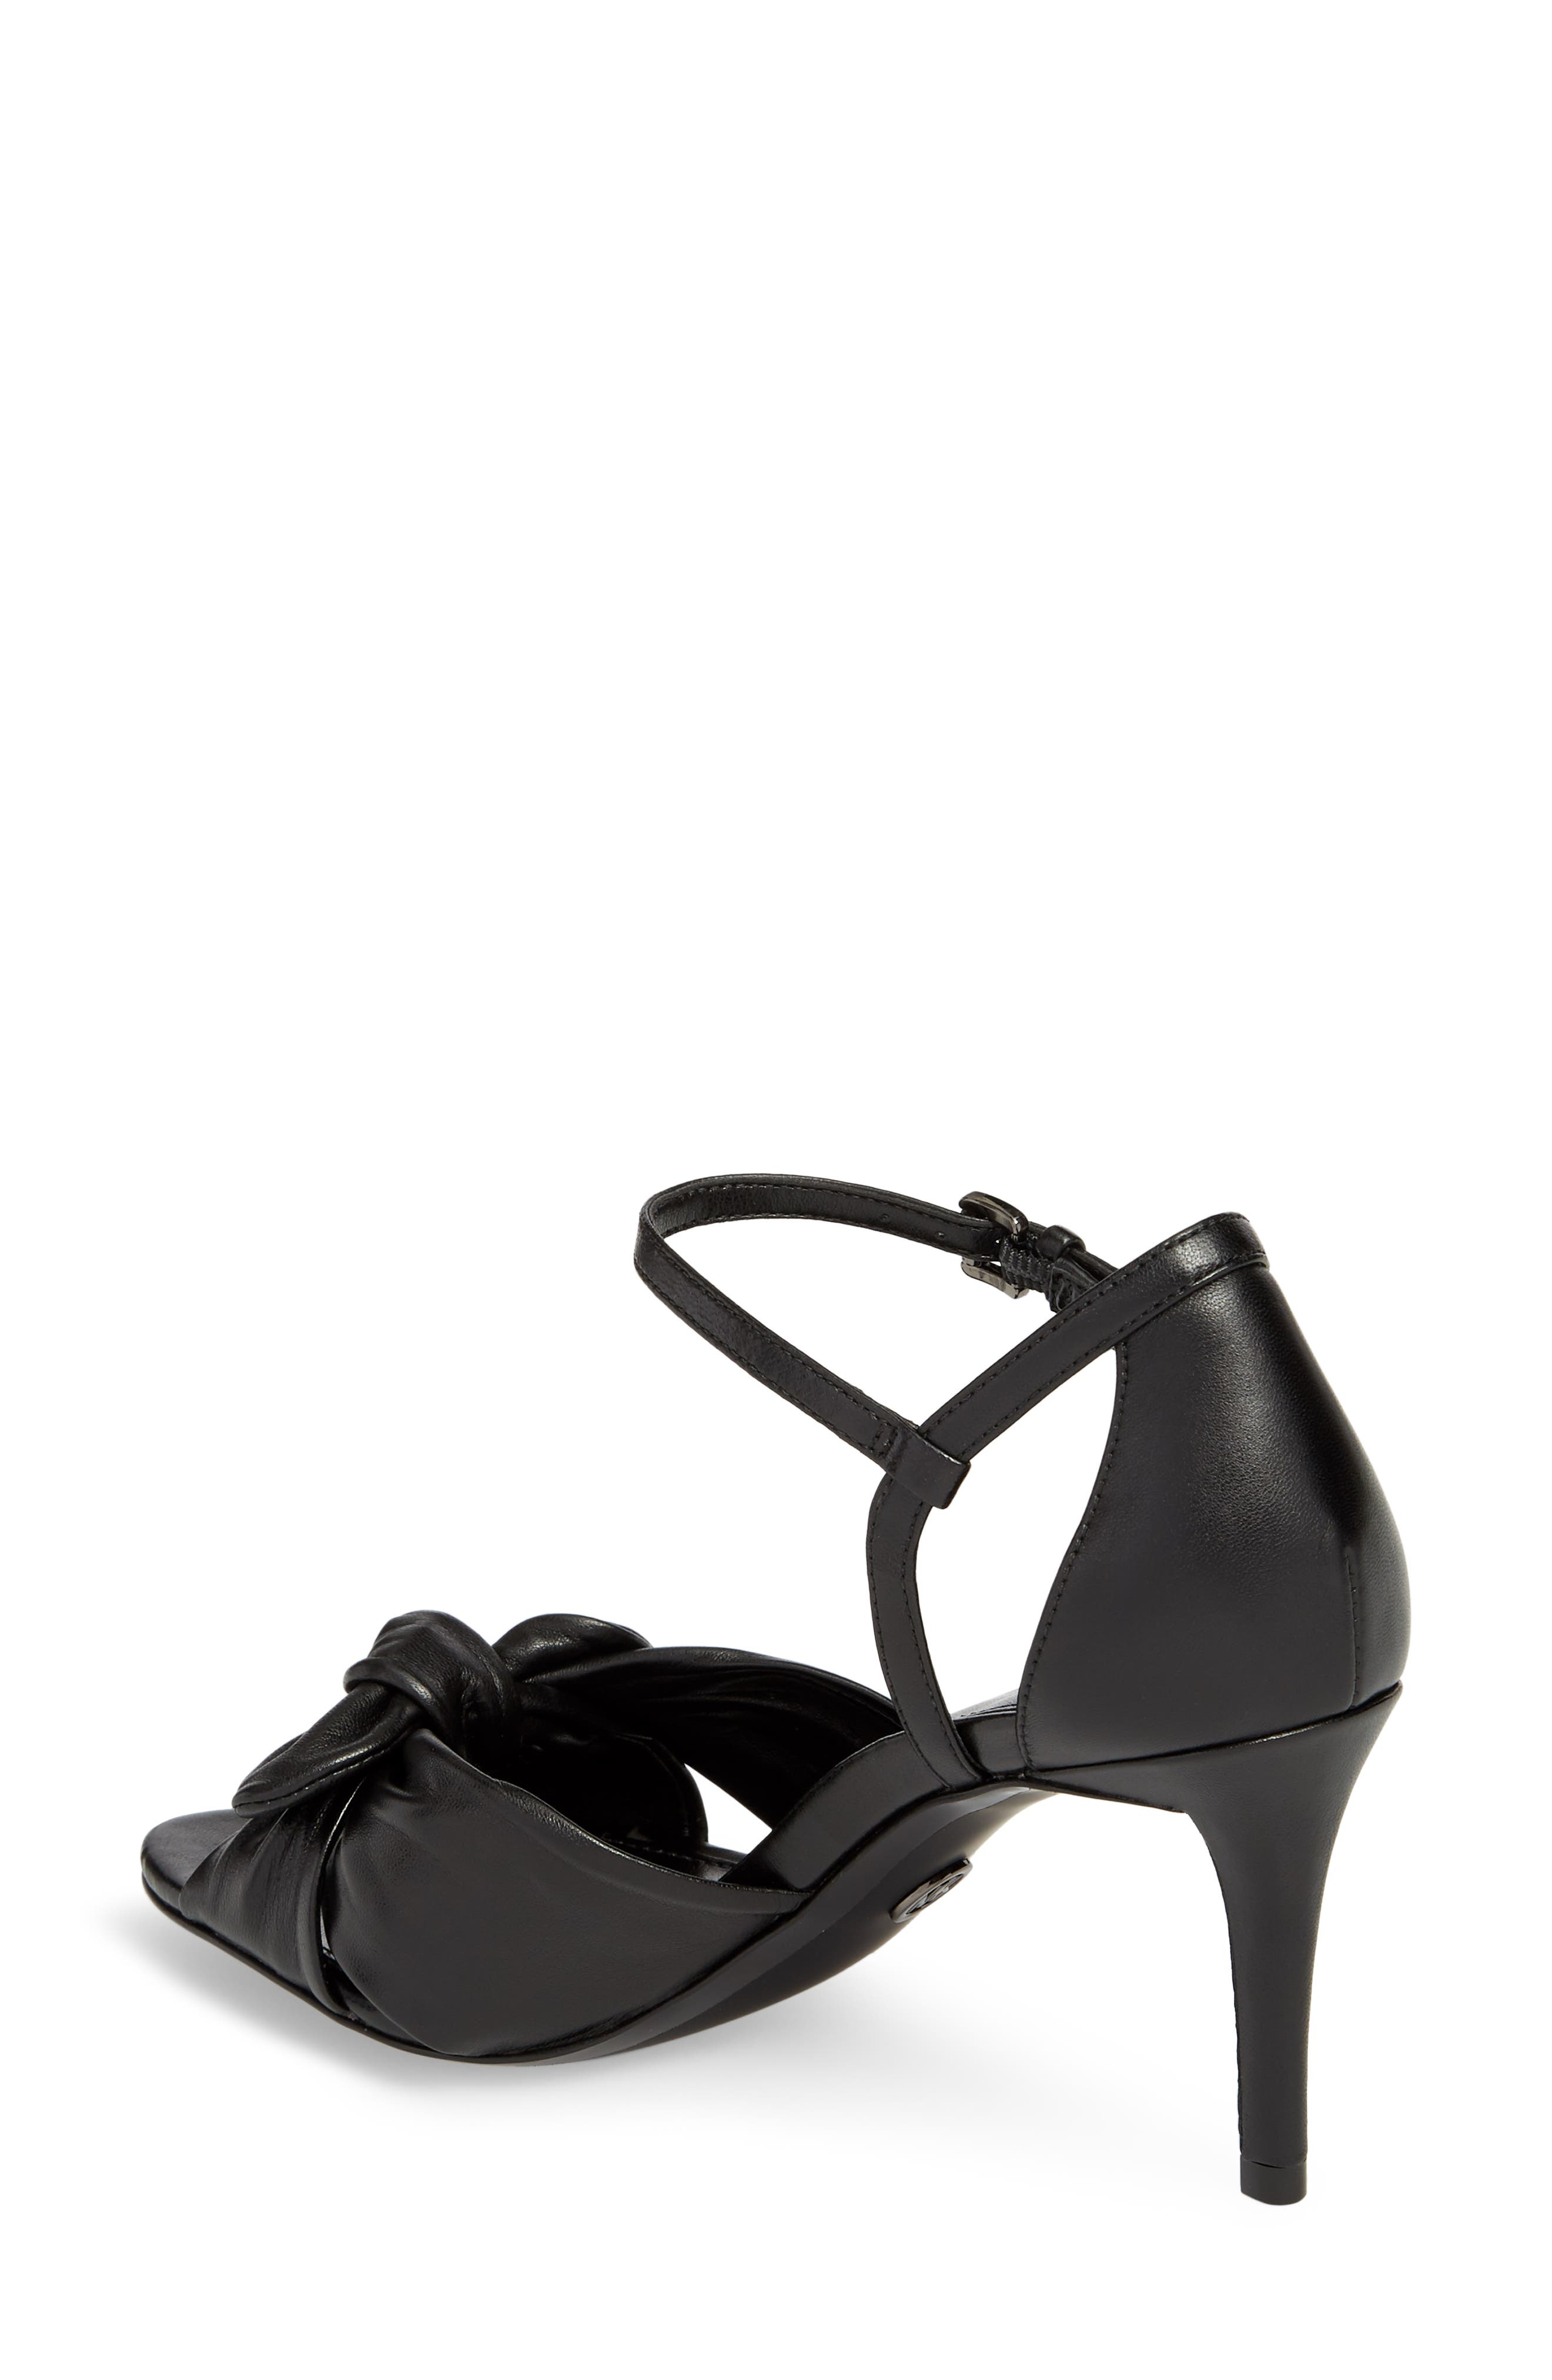 Pippa Sandal,                             Alternate thumbnail 2, color,                             Black